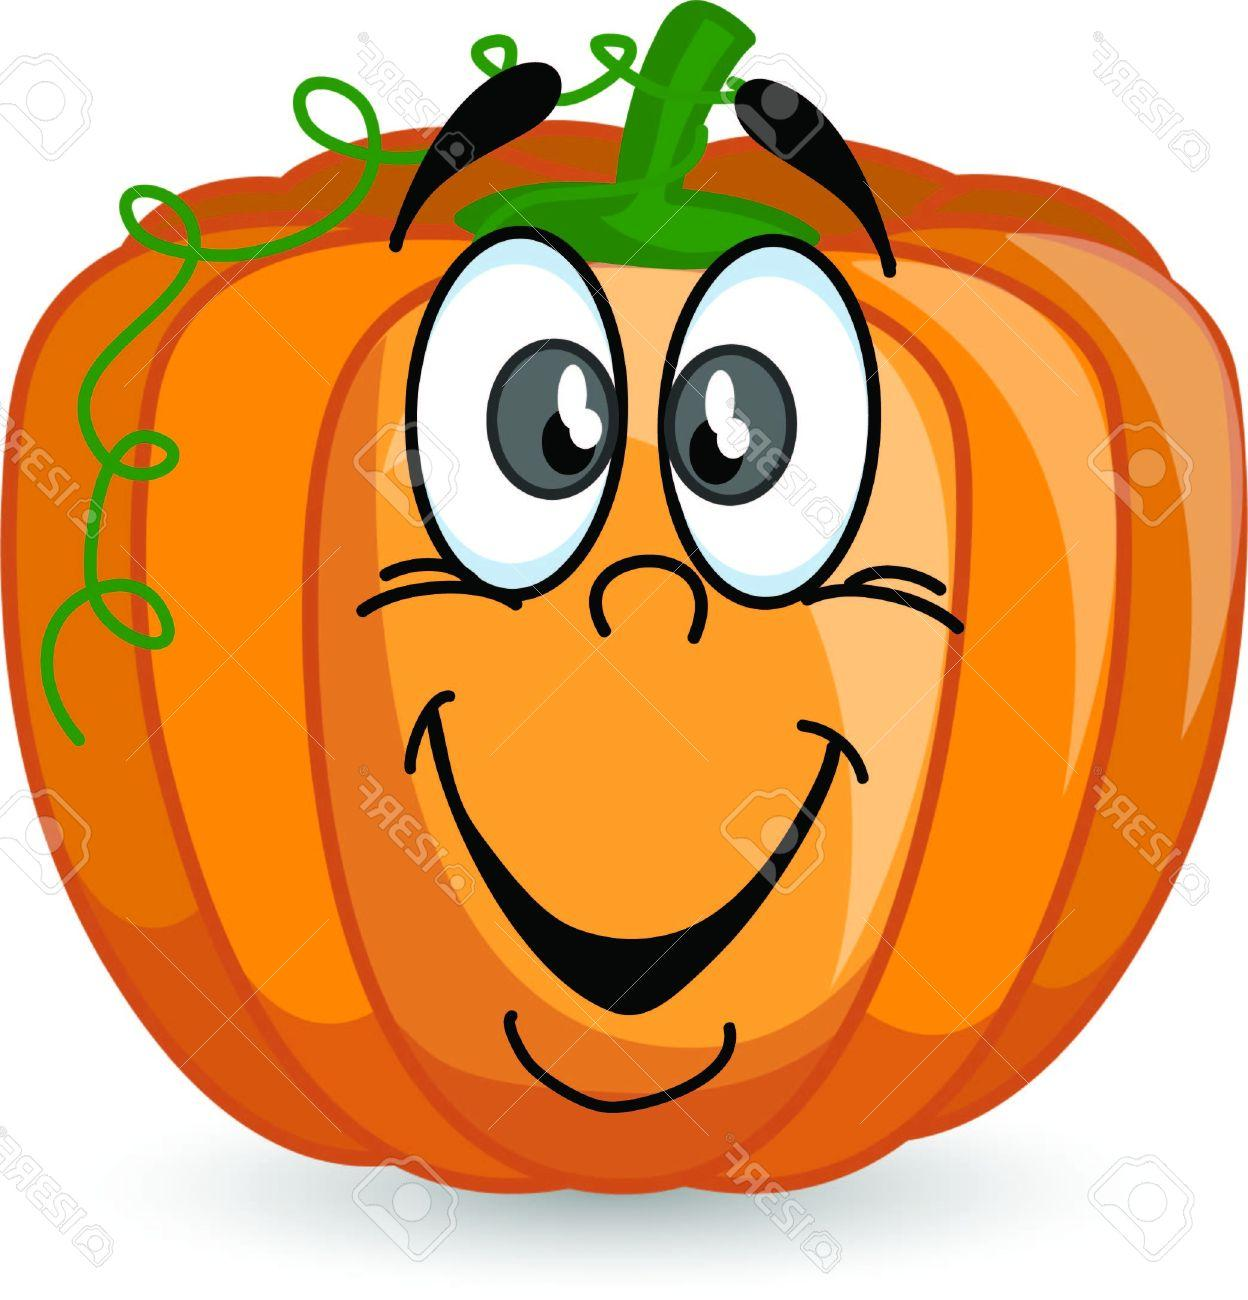 1248x1300 Best Free Cartoon Pumpkin Vector Cdr Free Vector Art, Images